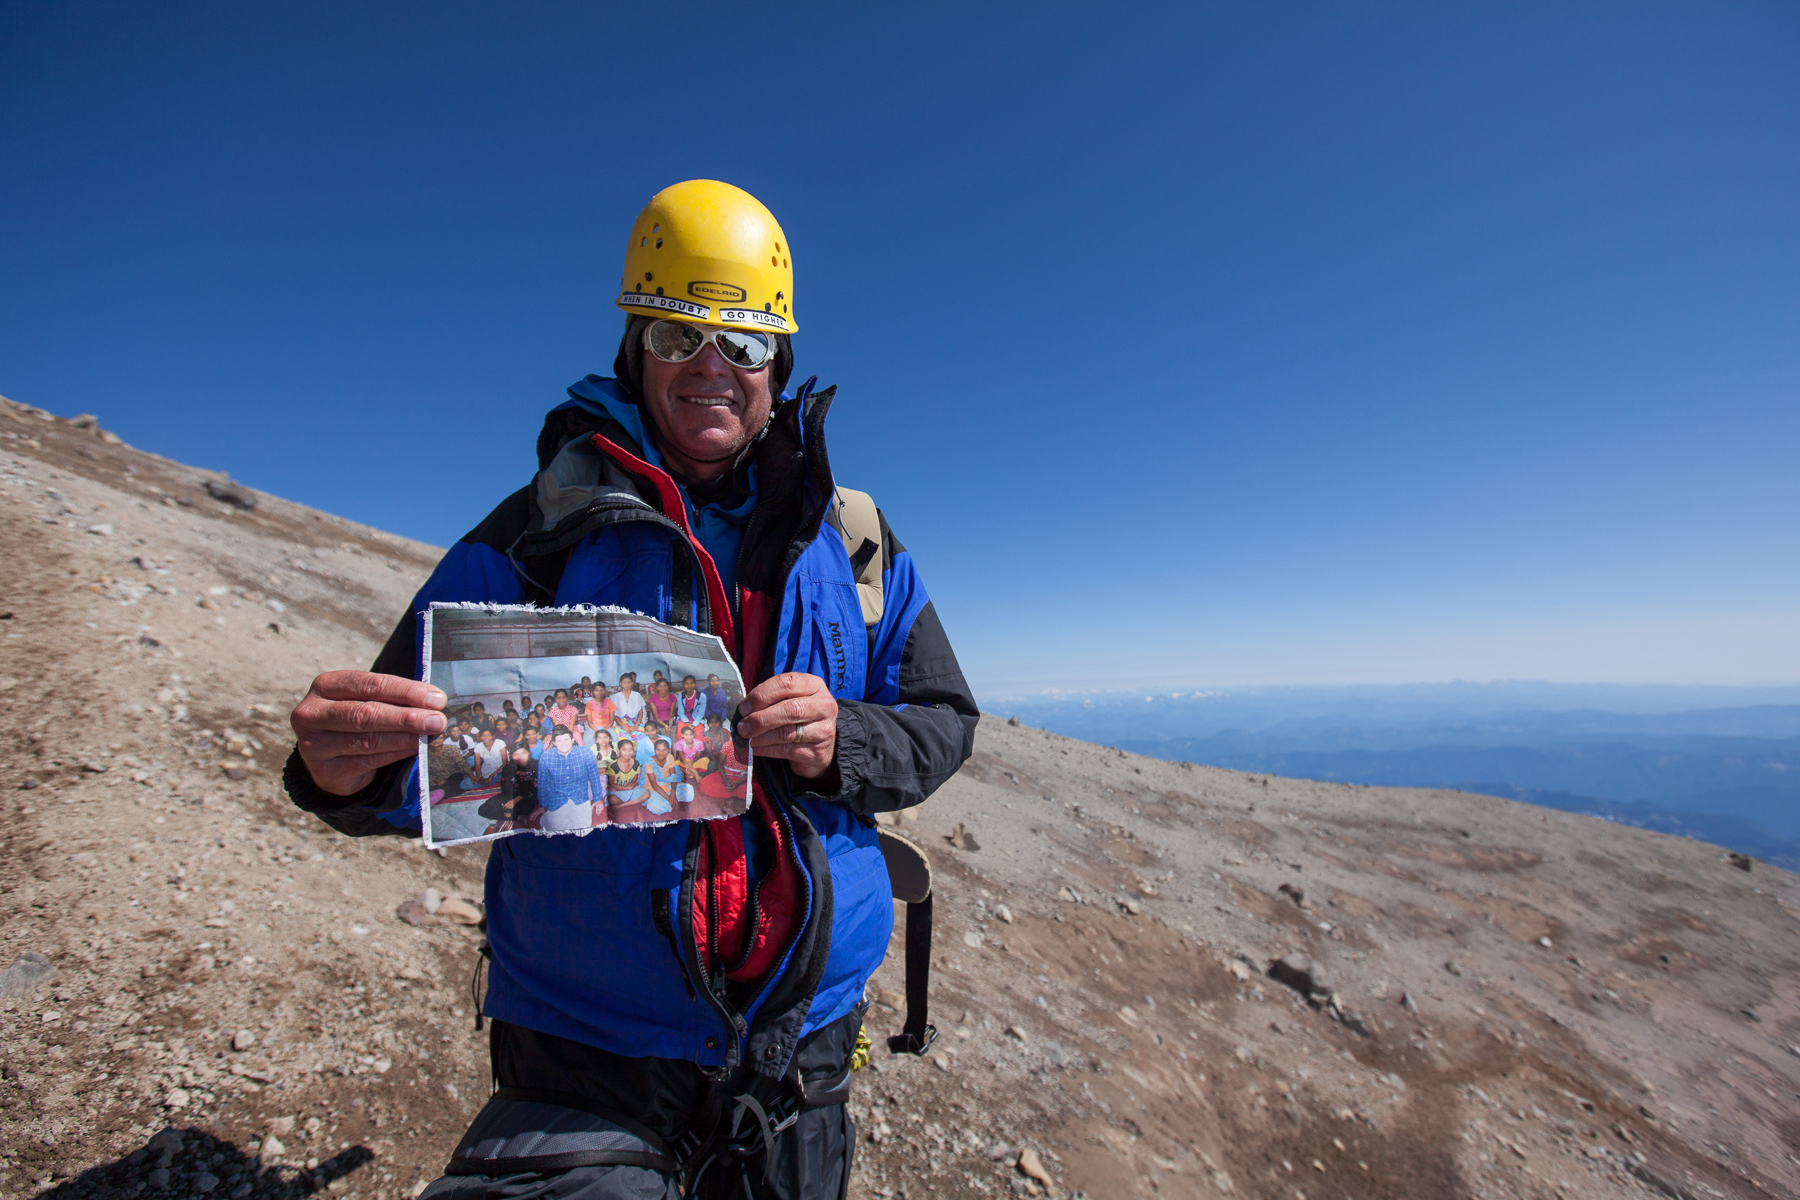 C4C climber holds a photo on the summit of Rainier. These were the girls in India who were actively praying for us as we climbed for them in 2013. He had met them in India that year, so the climb was particularly personal for him. Sound bites from the girls are often played over our walkie talkies from our base camp crew while we are on the mountain. It. Is. Intense.